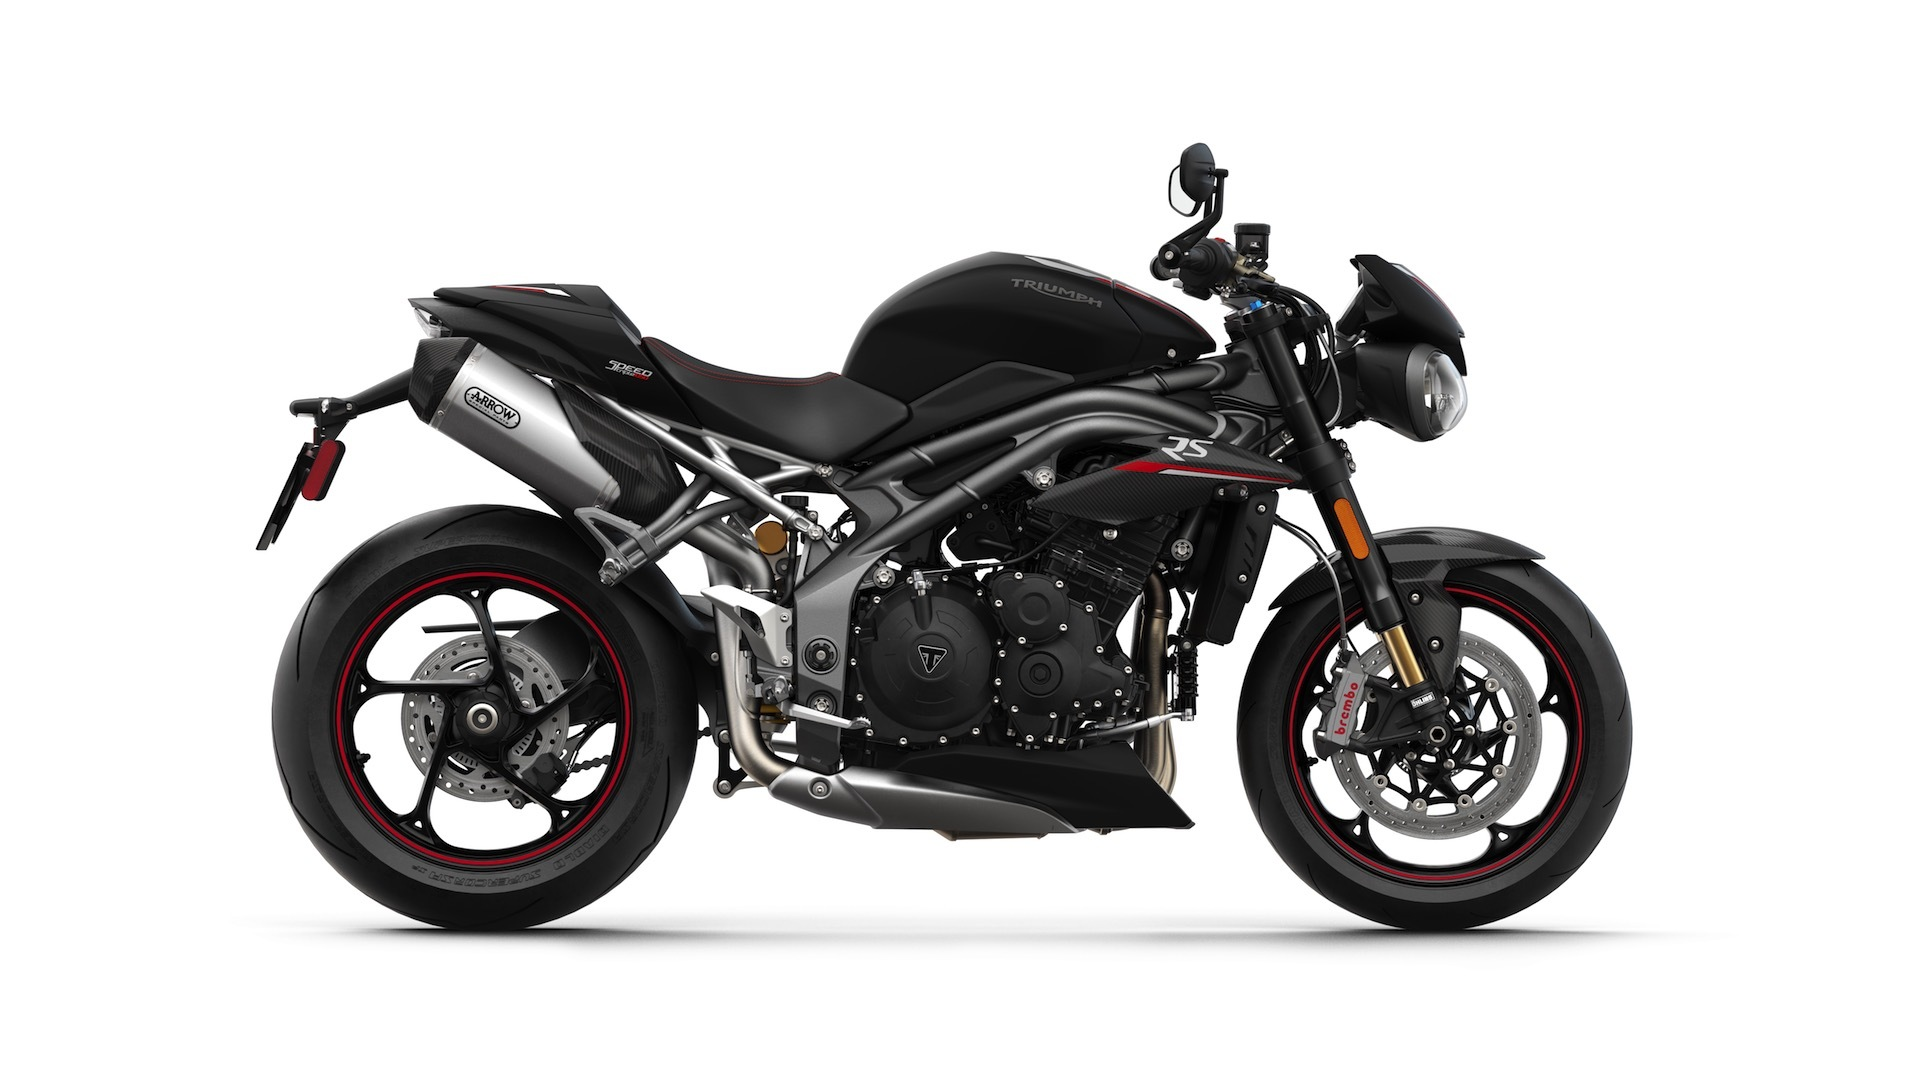 2018 triumph speed triple rs black bike | hd wallpapers